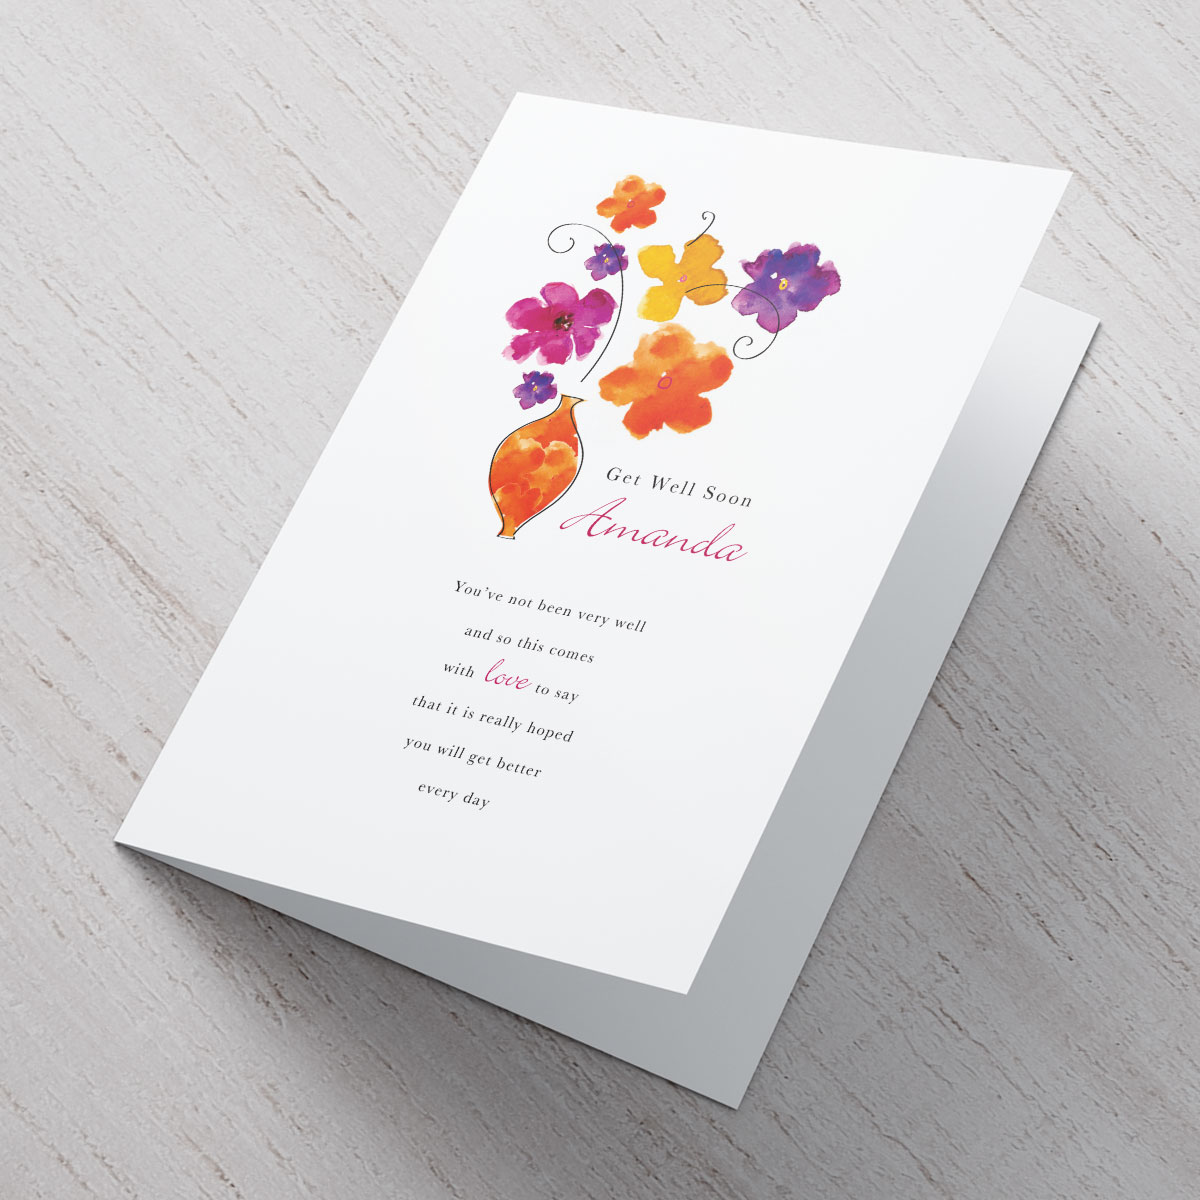 Admirable Get Well Soon Flower Vase An Personalised Card M Get Well Cards To Make Get Well Cards Ny M Get Well Soon Flower Vase An Personalised Card cards Get Well Cards